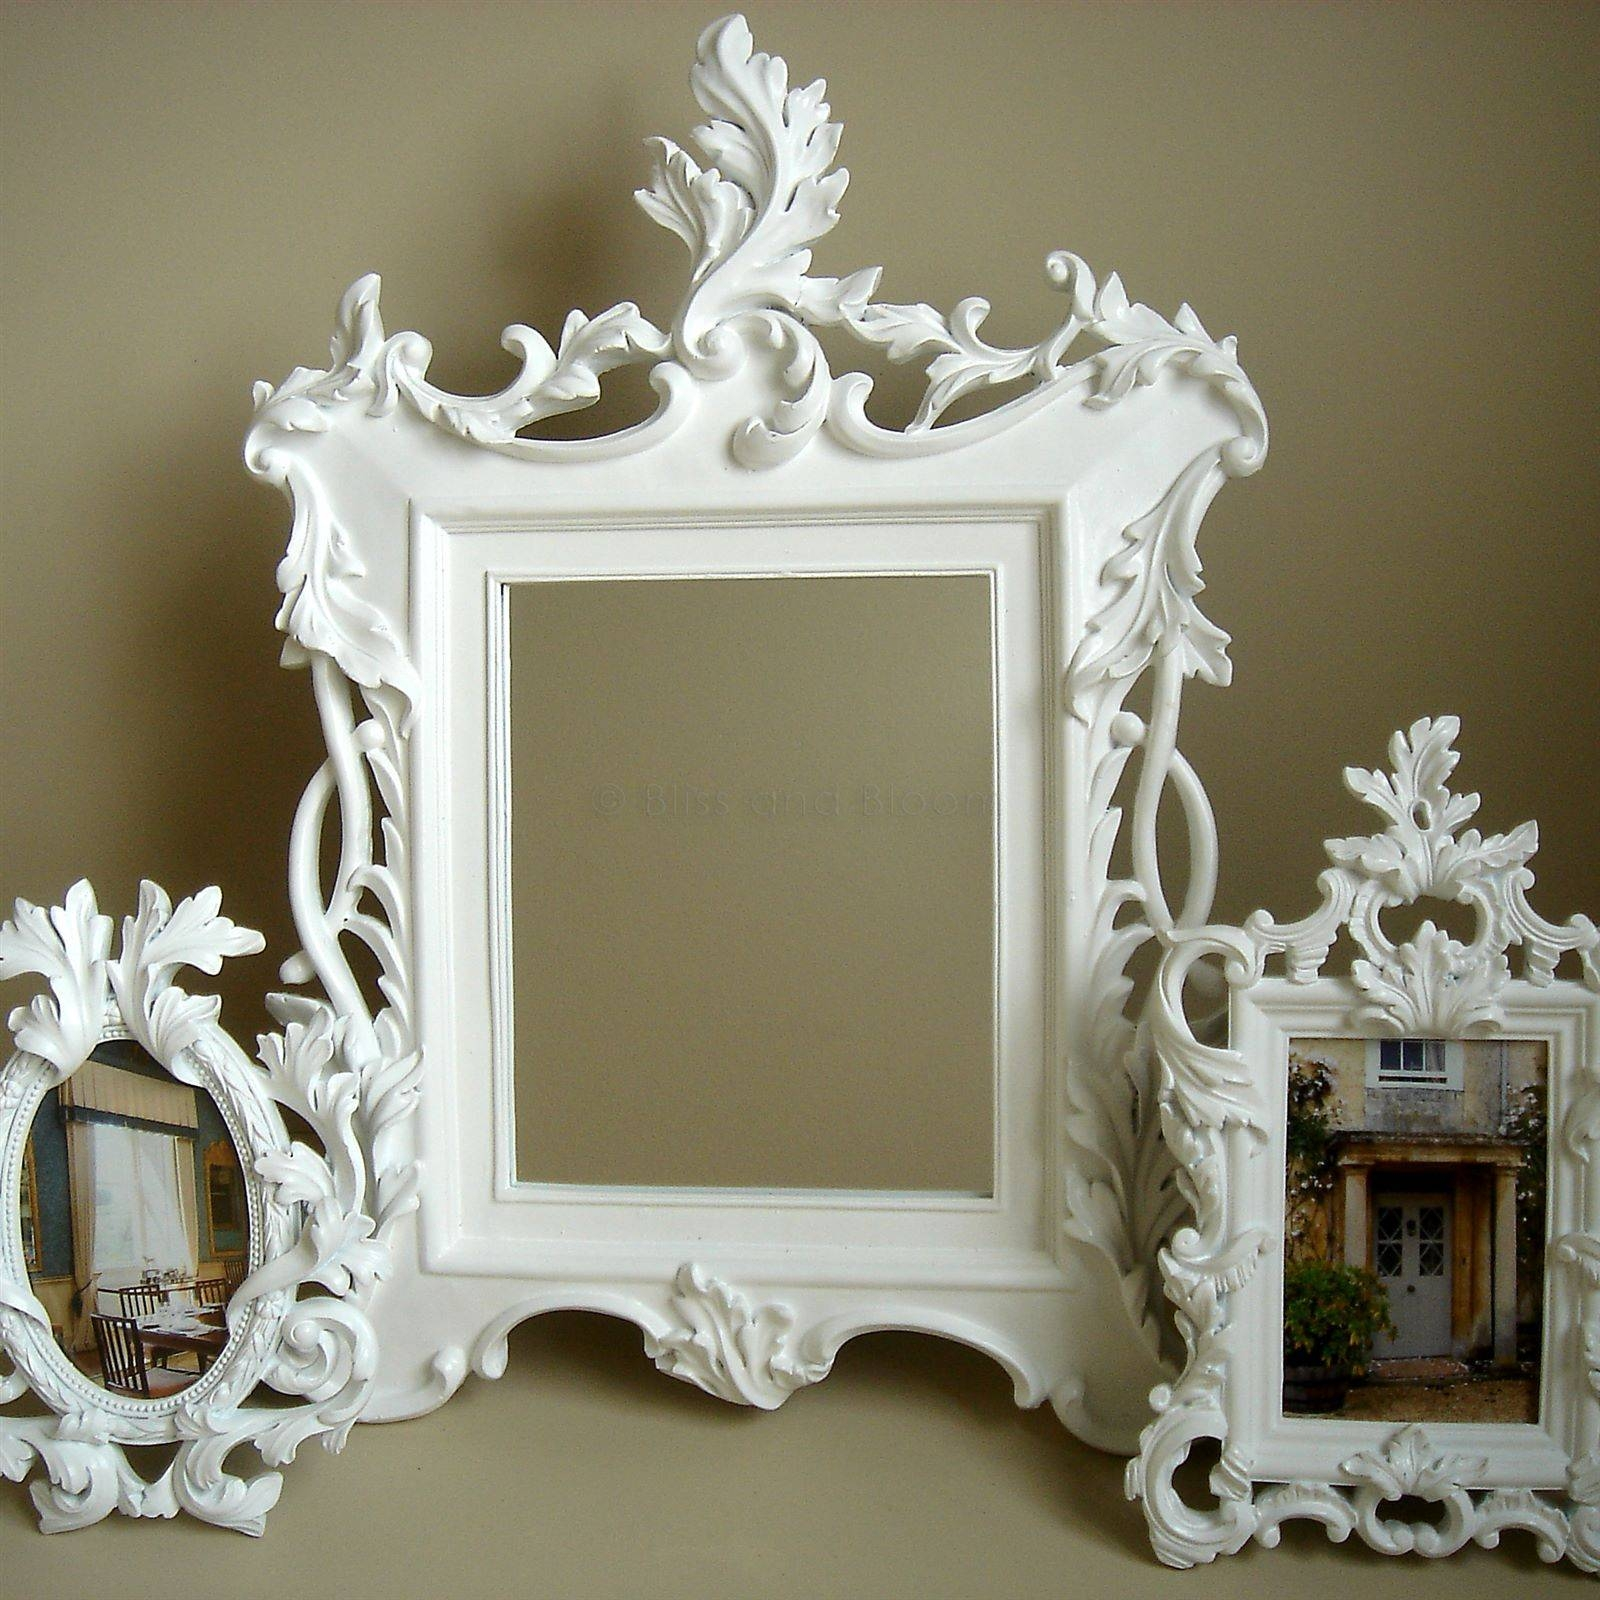 Bathroom: Astounding Baroque Mirror With Unique Frame For Bathroom intended for White Baroque Wall Mirrors (Image 4 of 25)